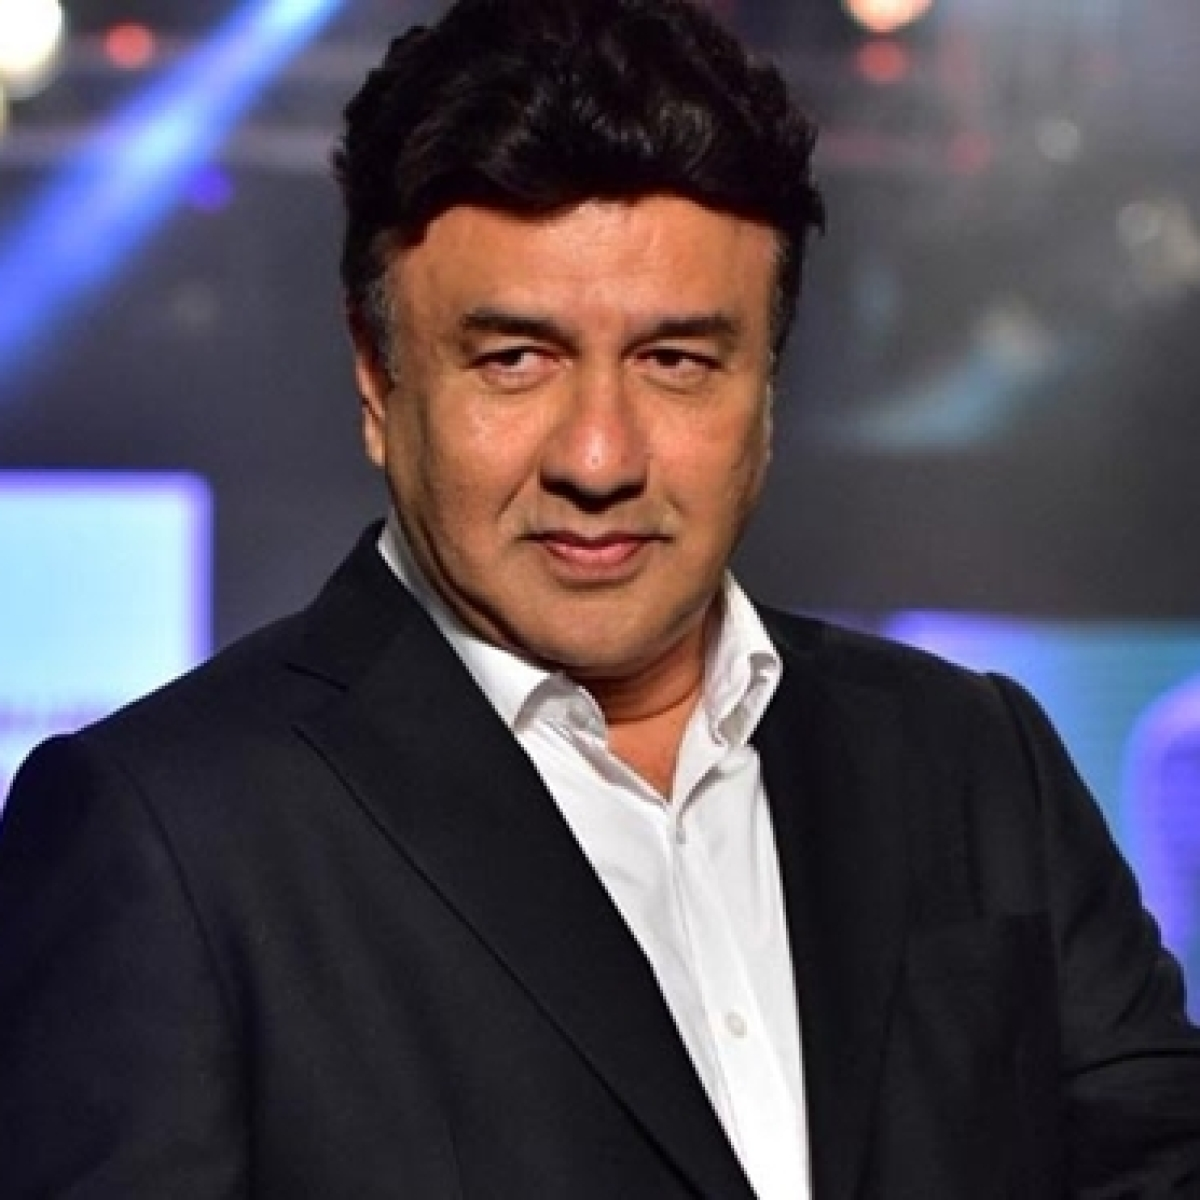 'It takes two hands to clap rite?': Hema Sardesai's shocking defence of #MeToo accused Anu Malik